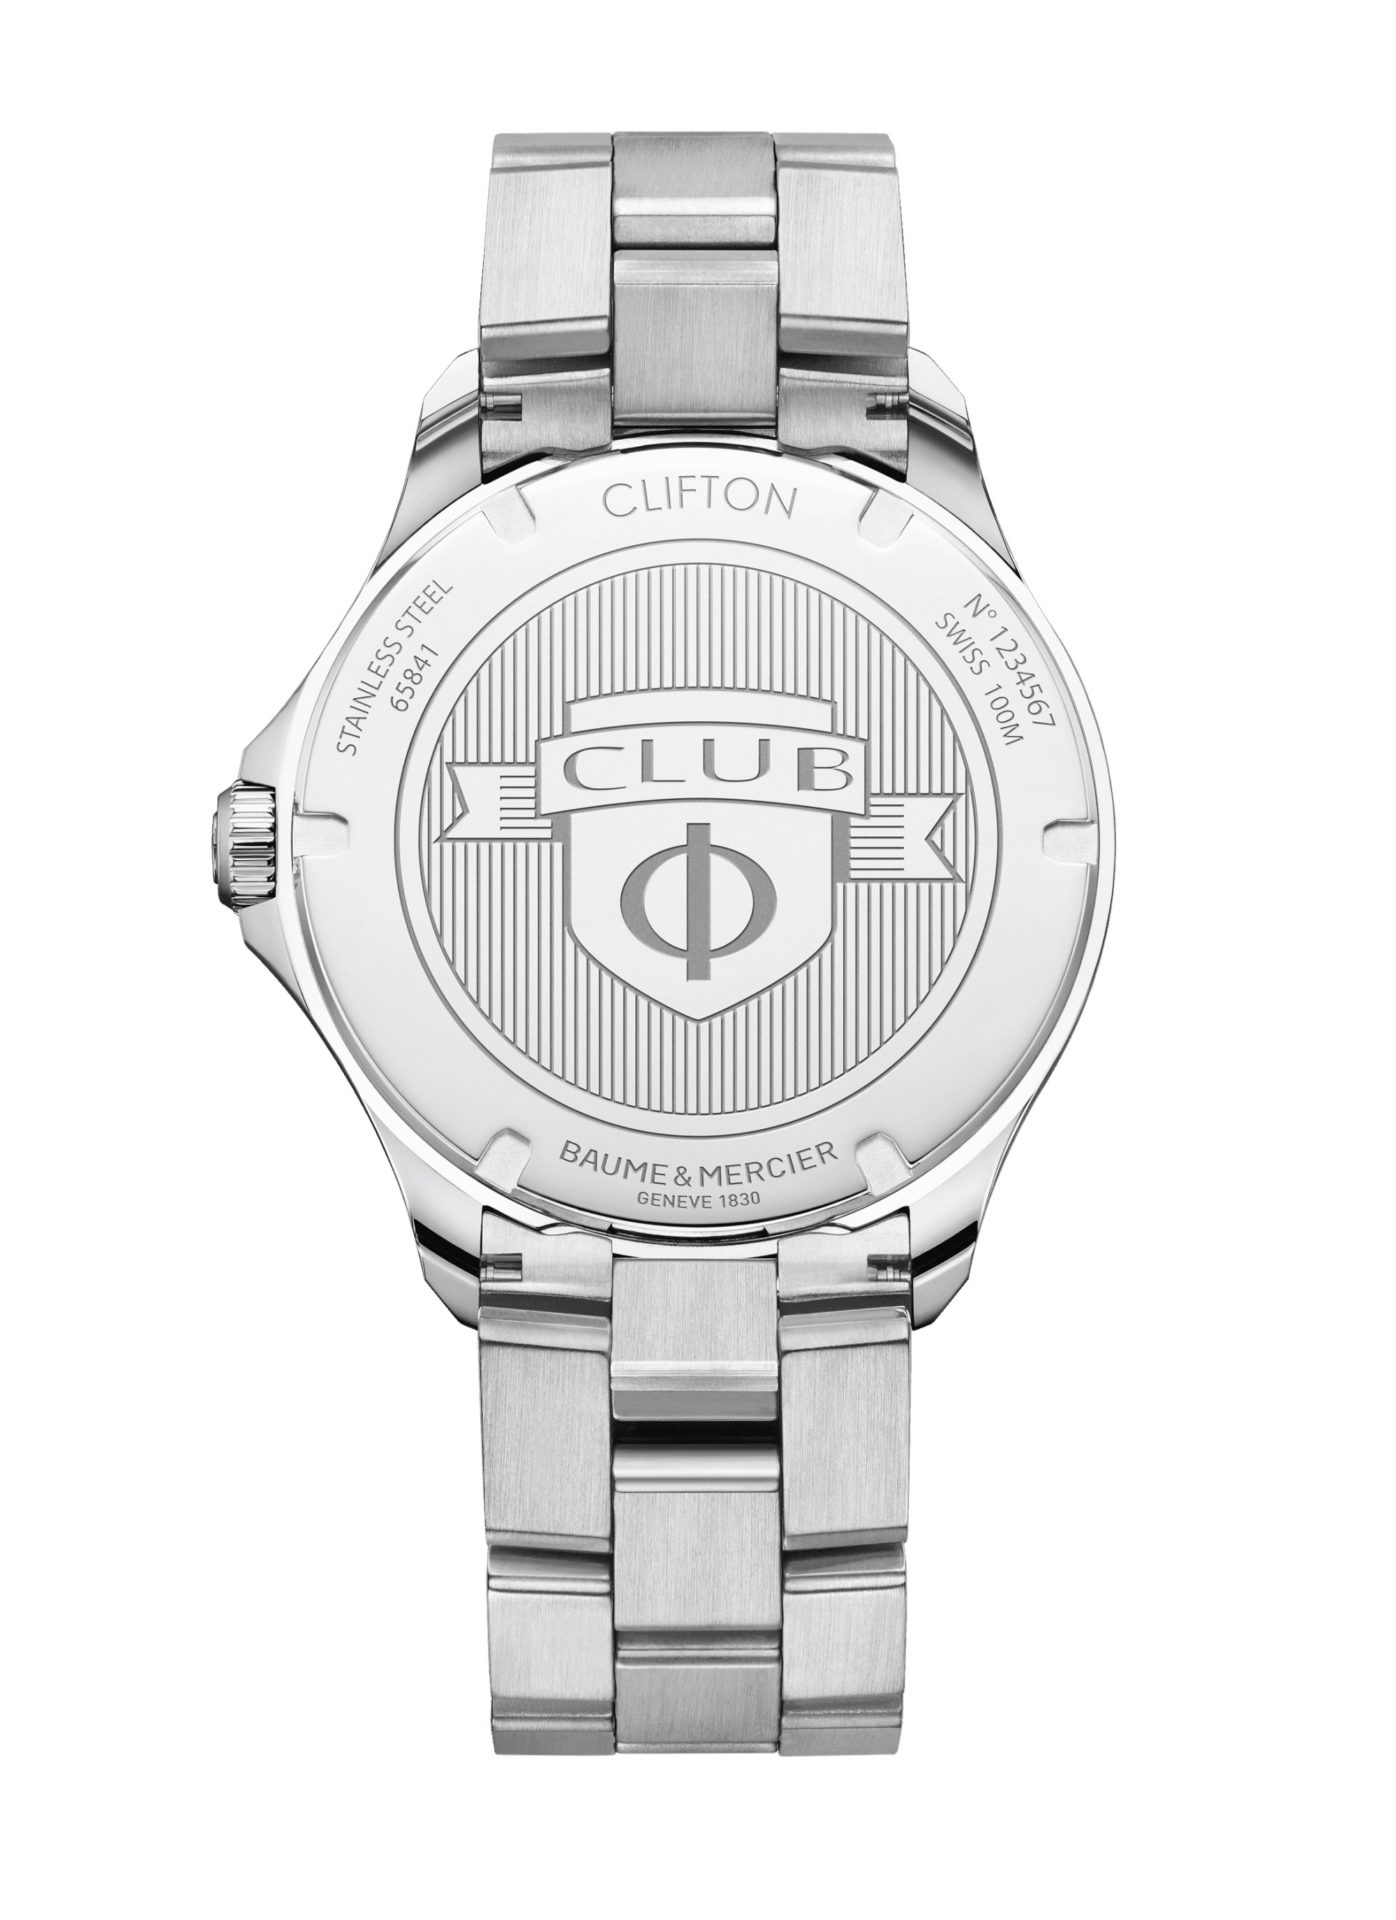 Baume-&-Mercier-Clifton-Club-10413*-Hall-of-Time